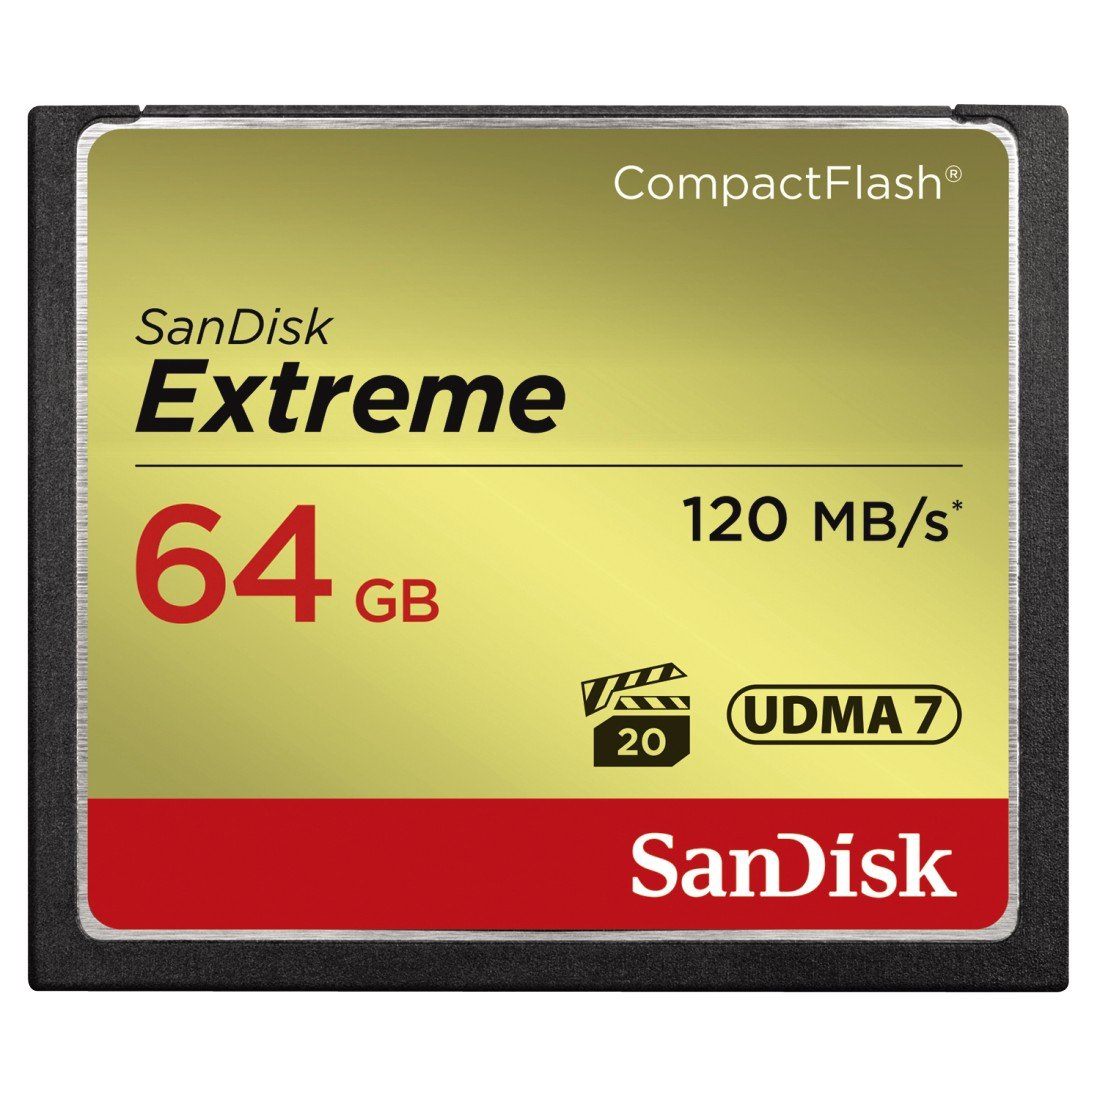 SanDisk Extreme 64GB CompactFlash Memory Card (SDCFXSB-064G-G46) by SanDisk